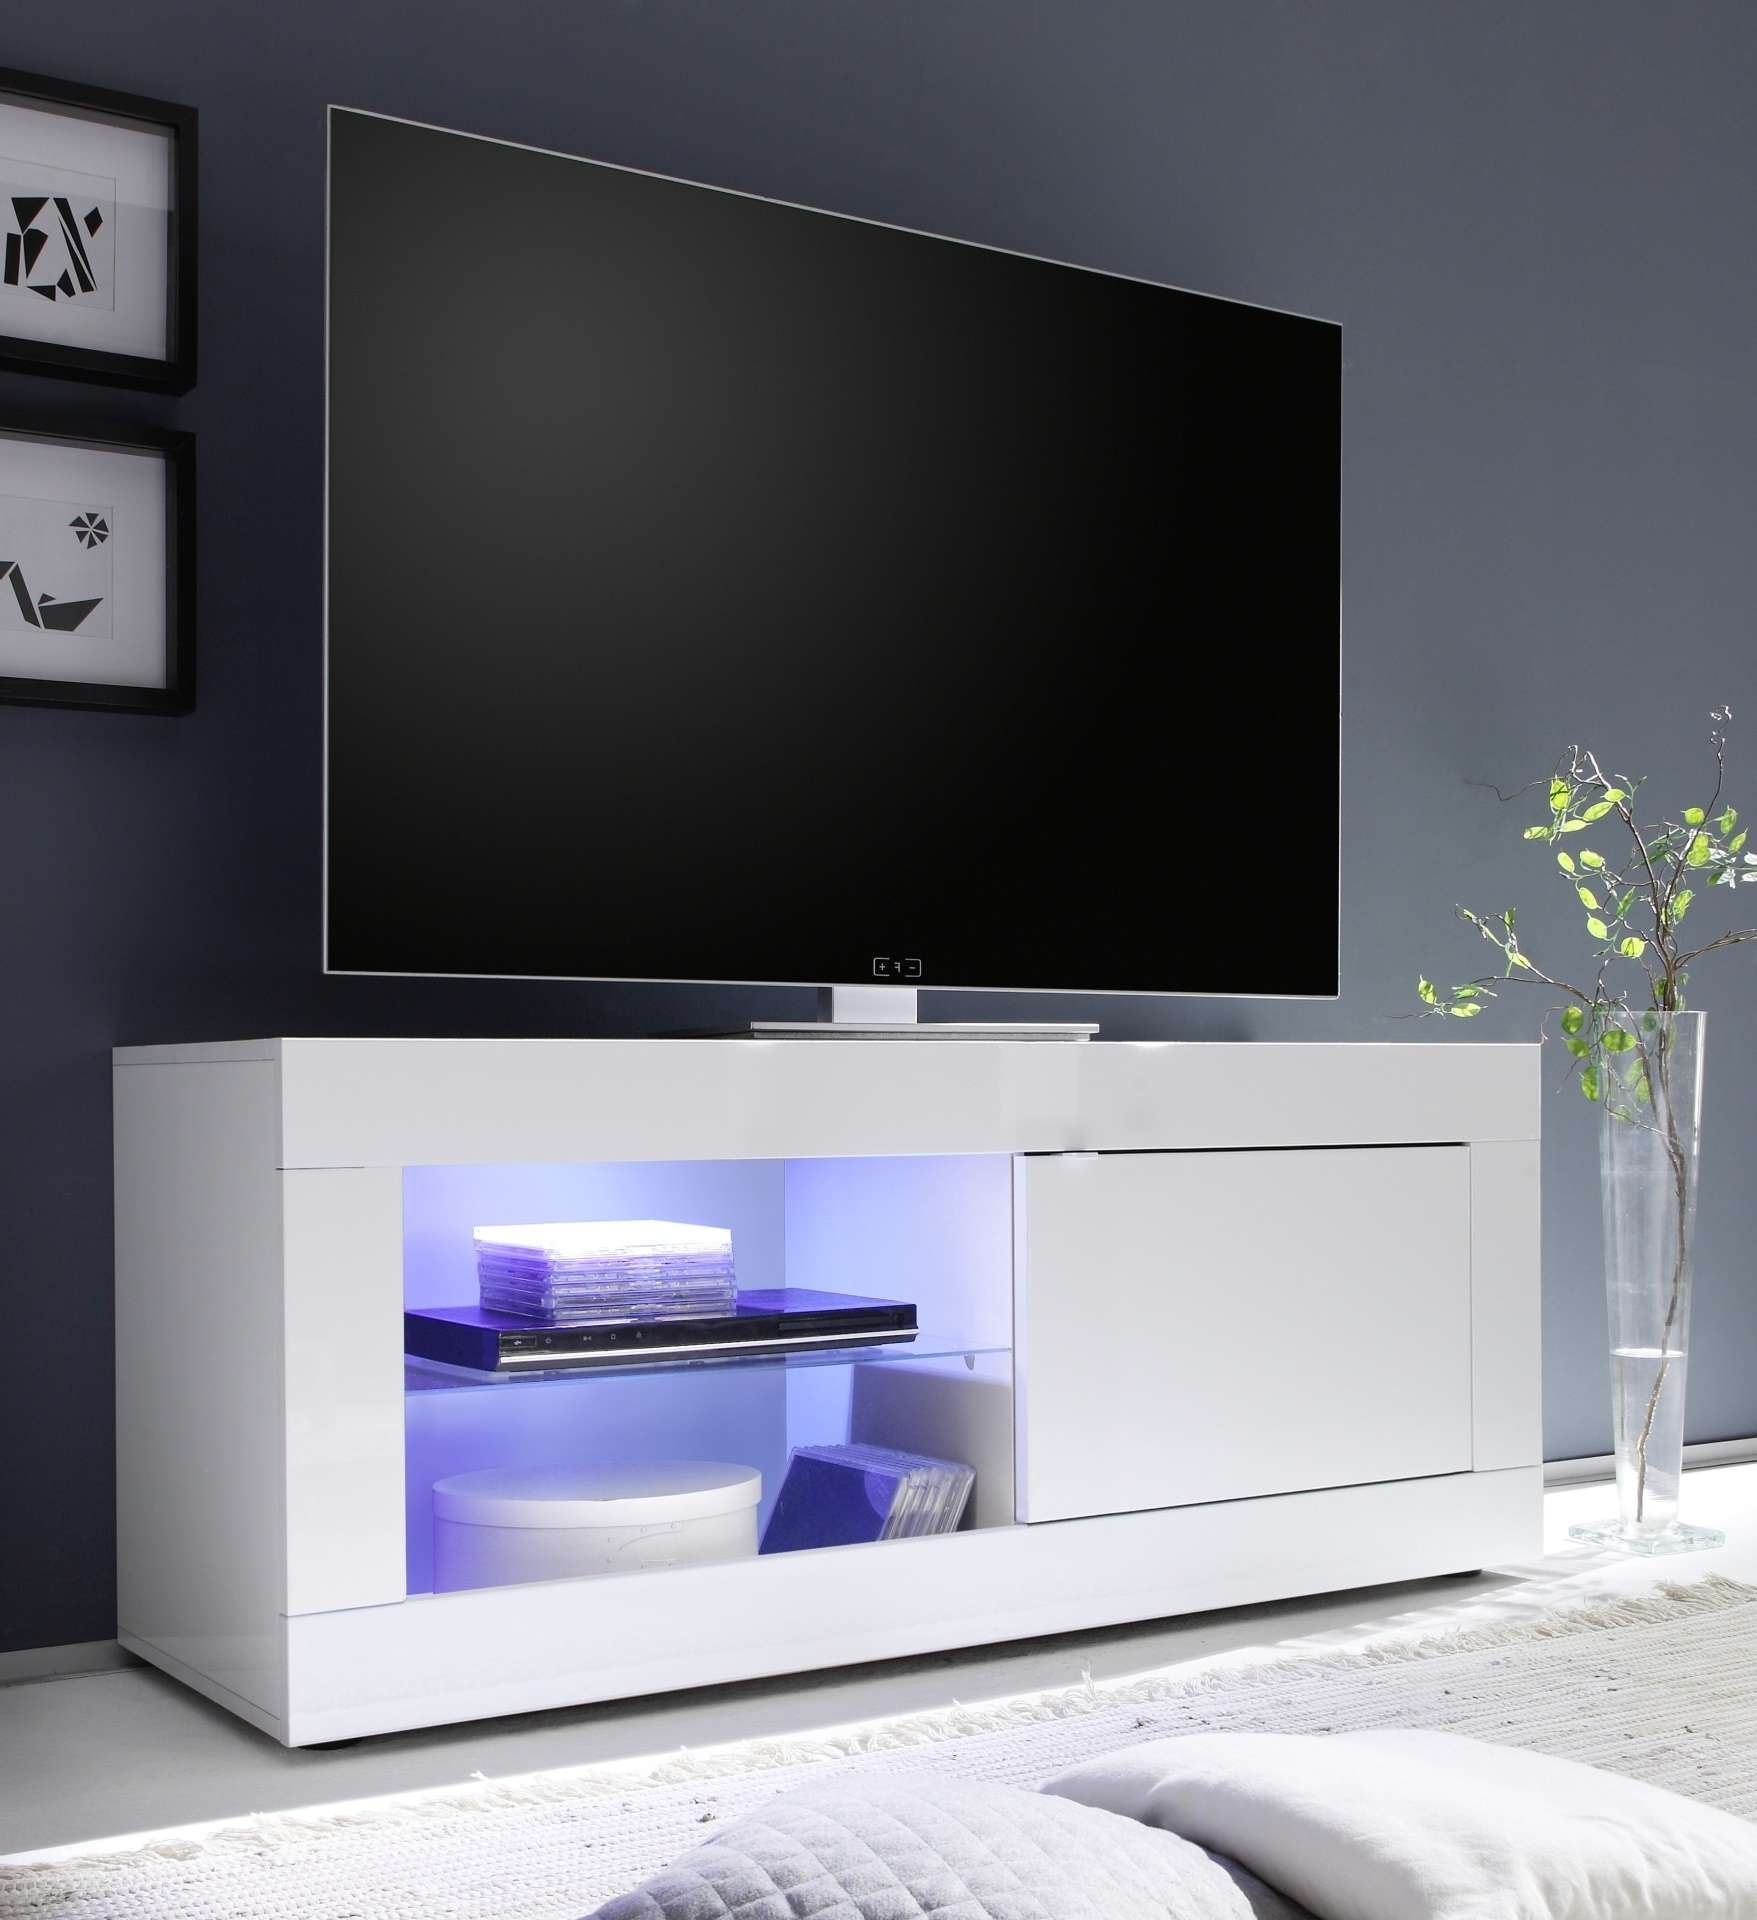 Dolcevita Gloss Tv Stand – Tv Stands – Sena Home Furniture For Gloss Tv Stands (View 4 of 15)